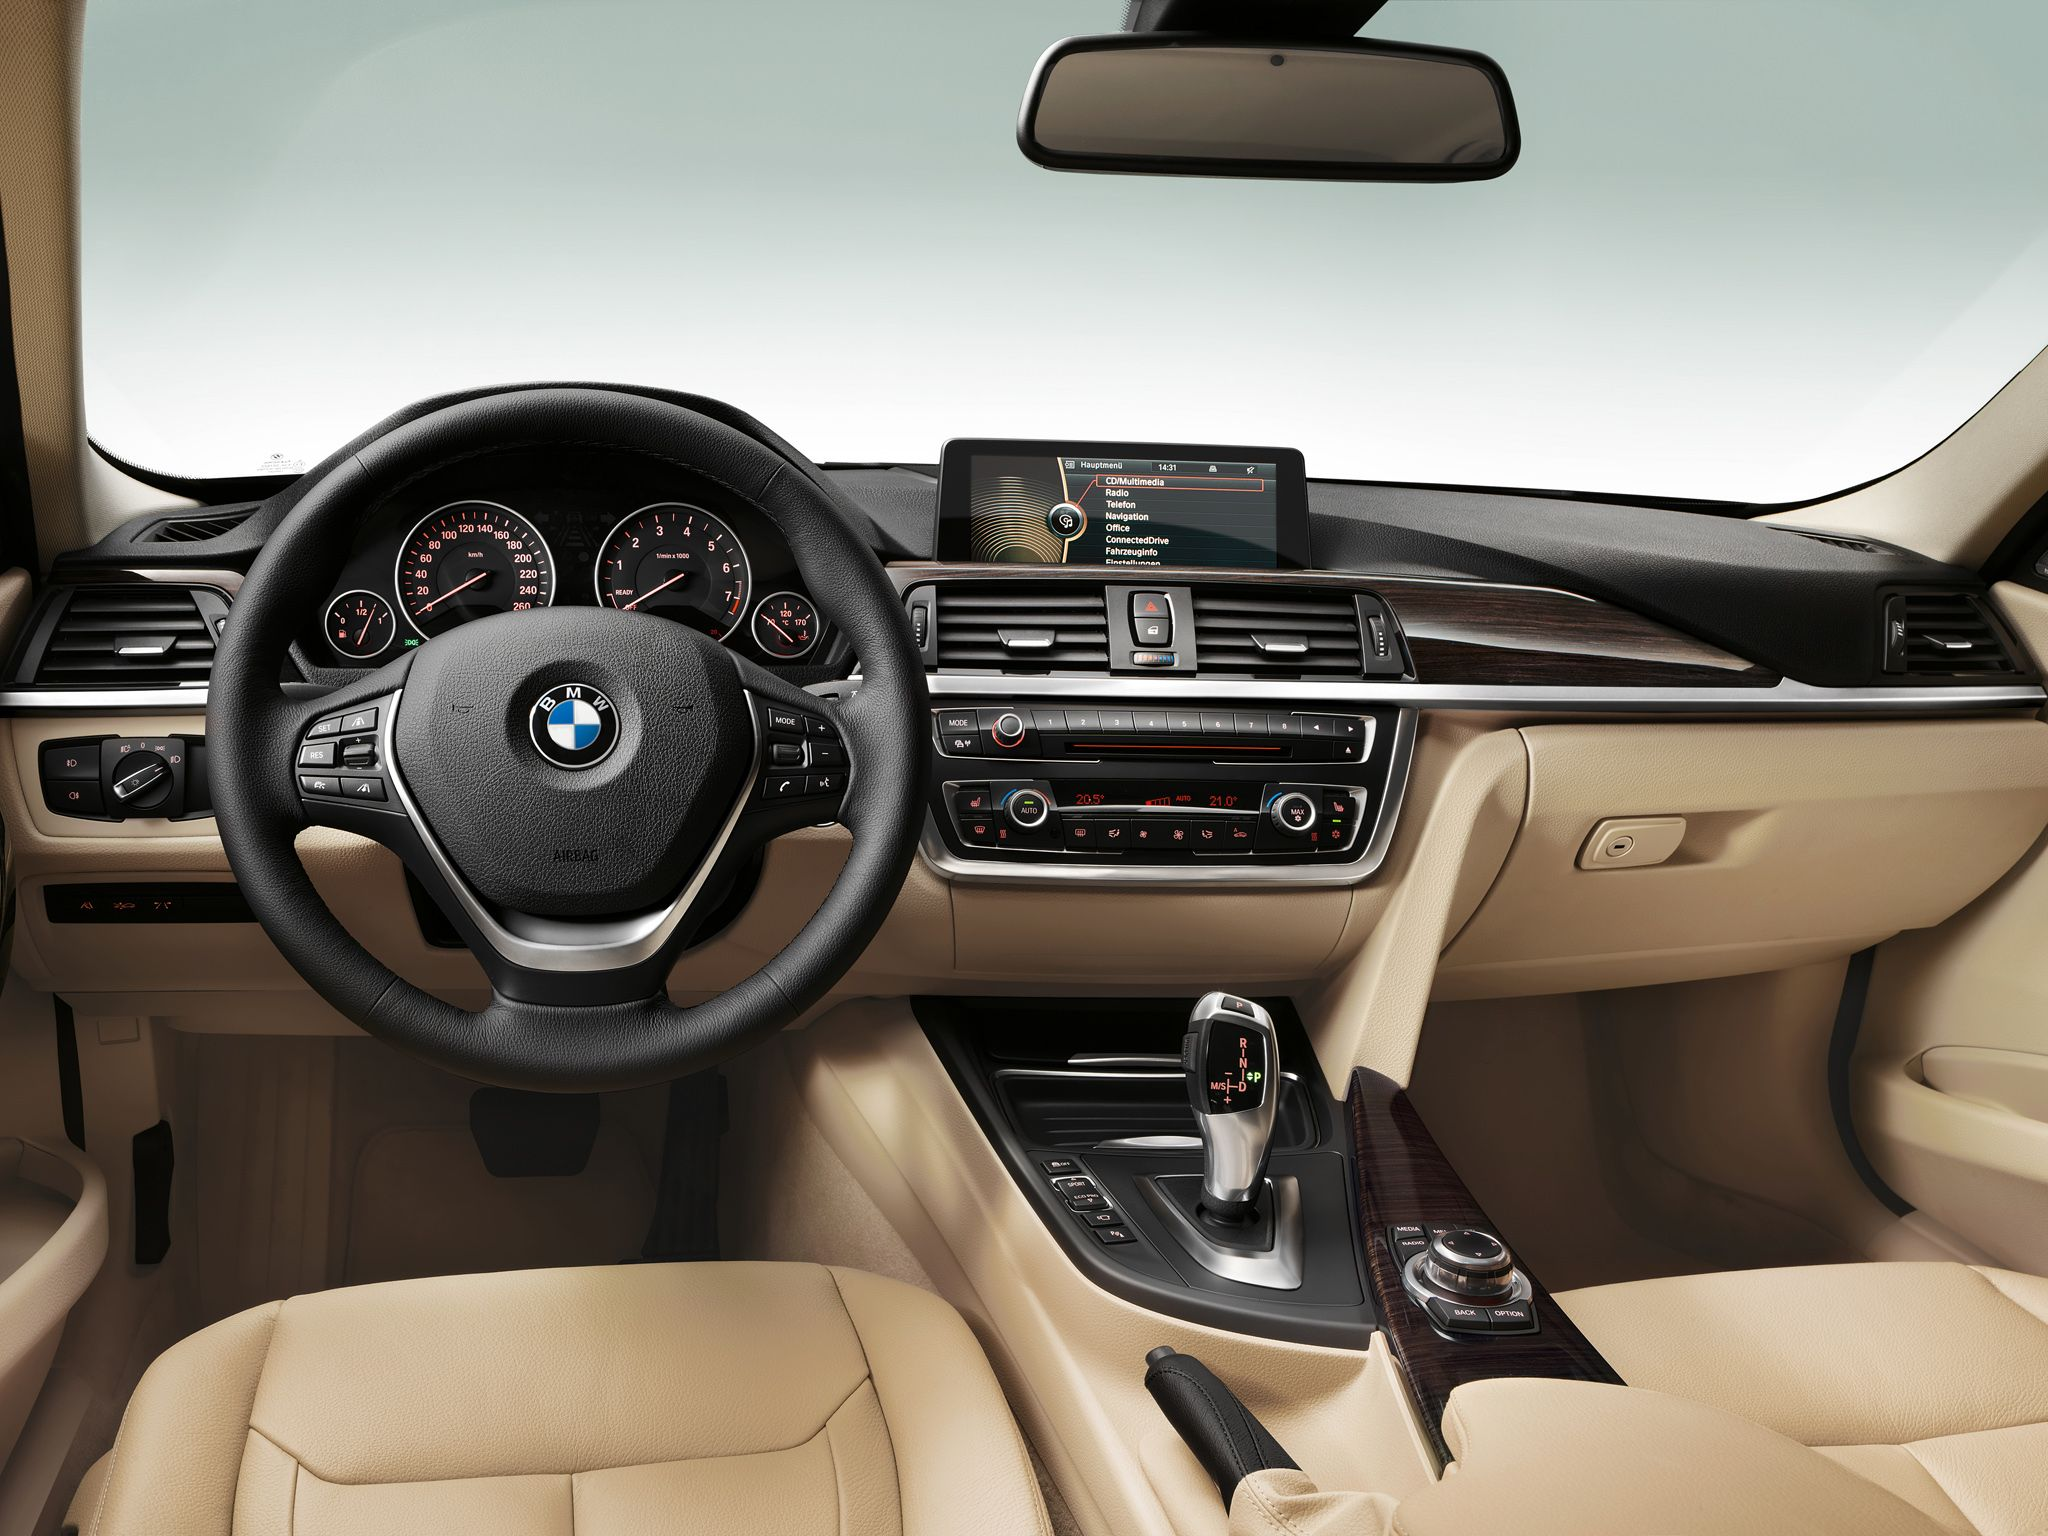 F30 Bmw 3 Series Luxury Line Dashboard A Vast Improvement Over The